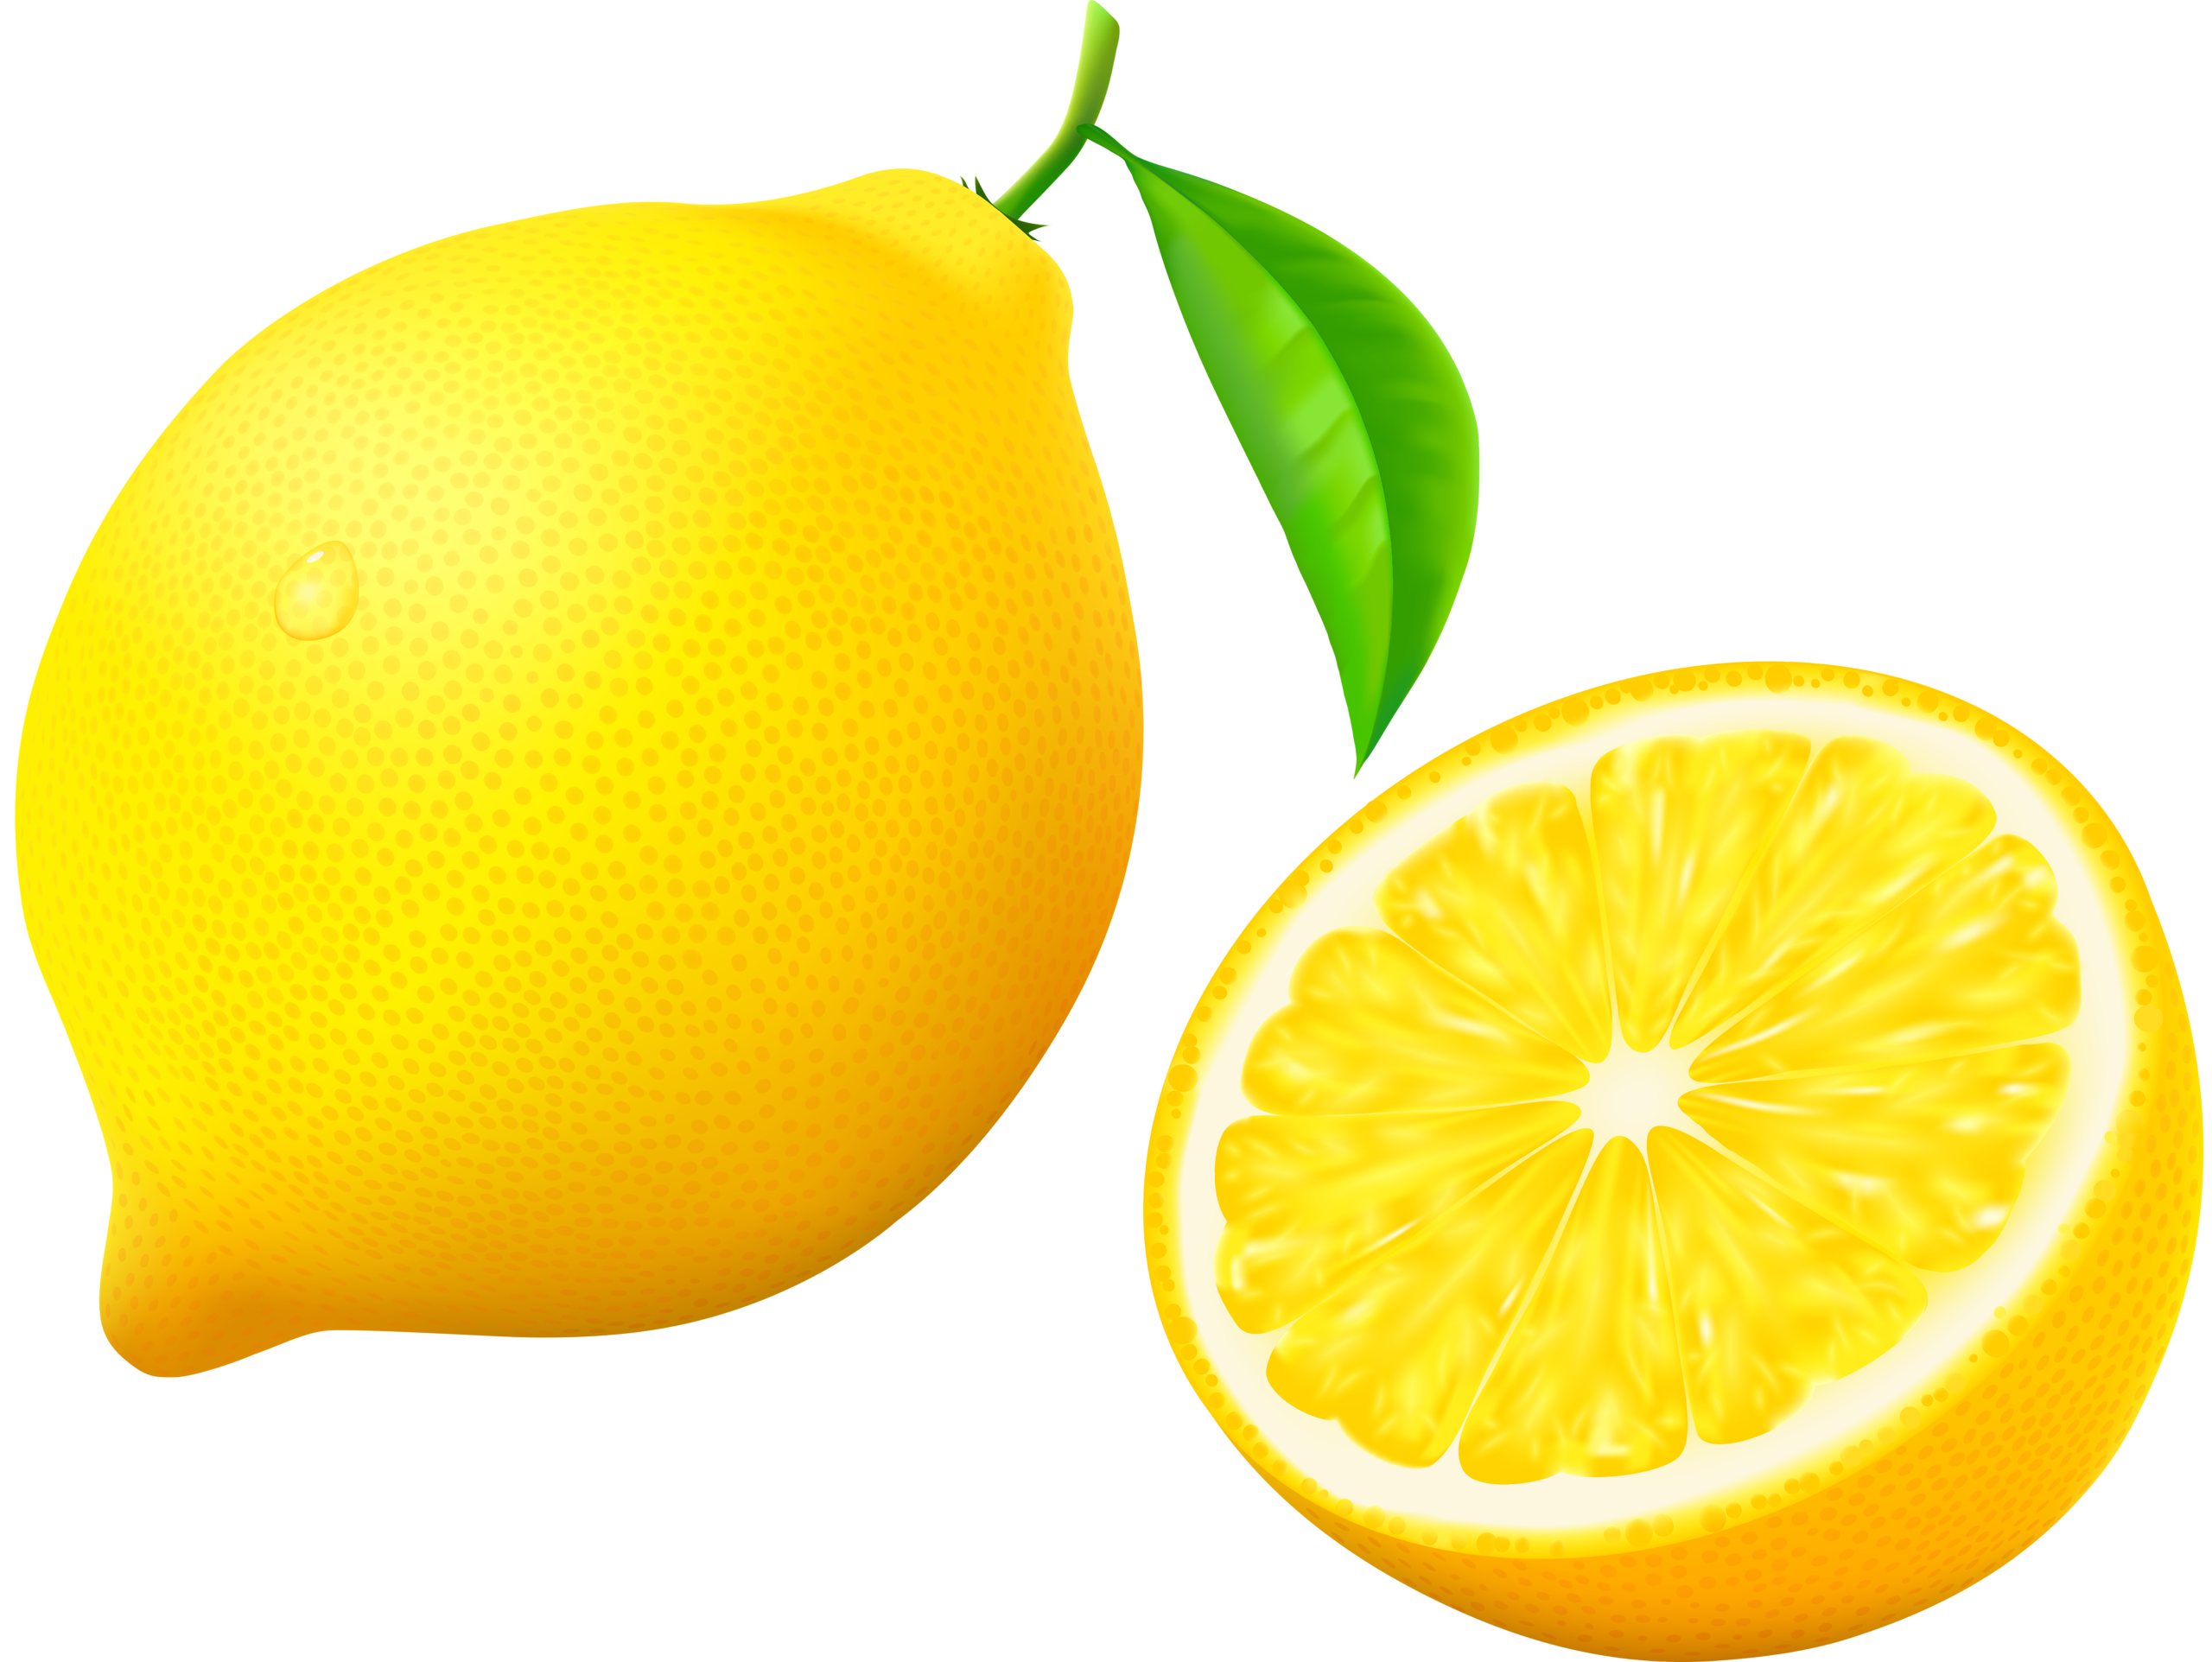 With half and flower. Fruit clipart lemon